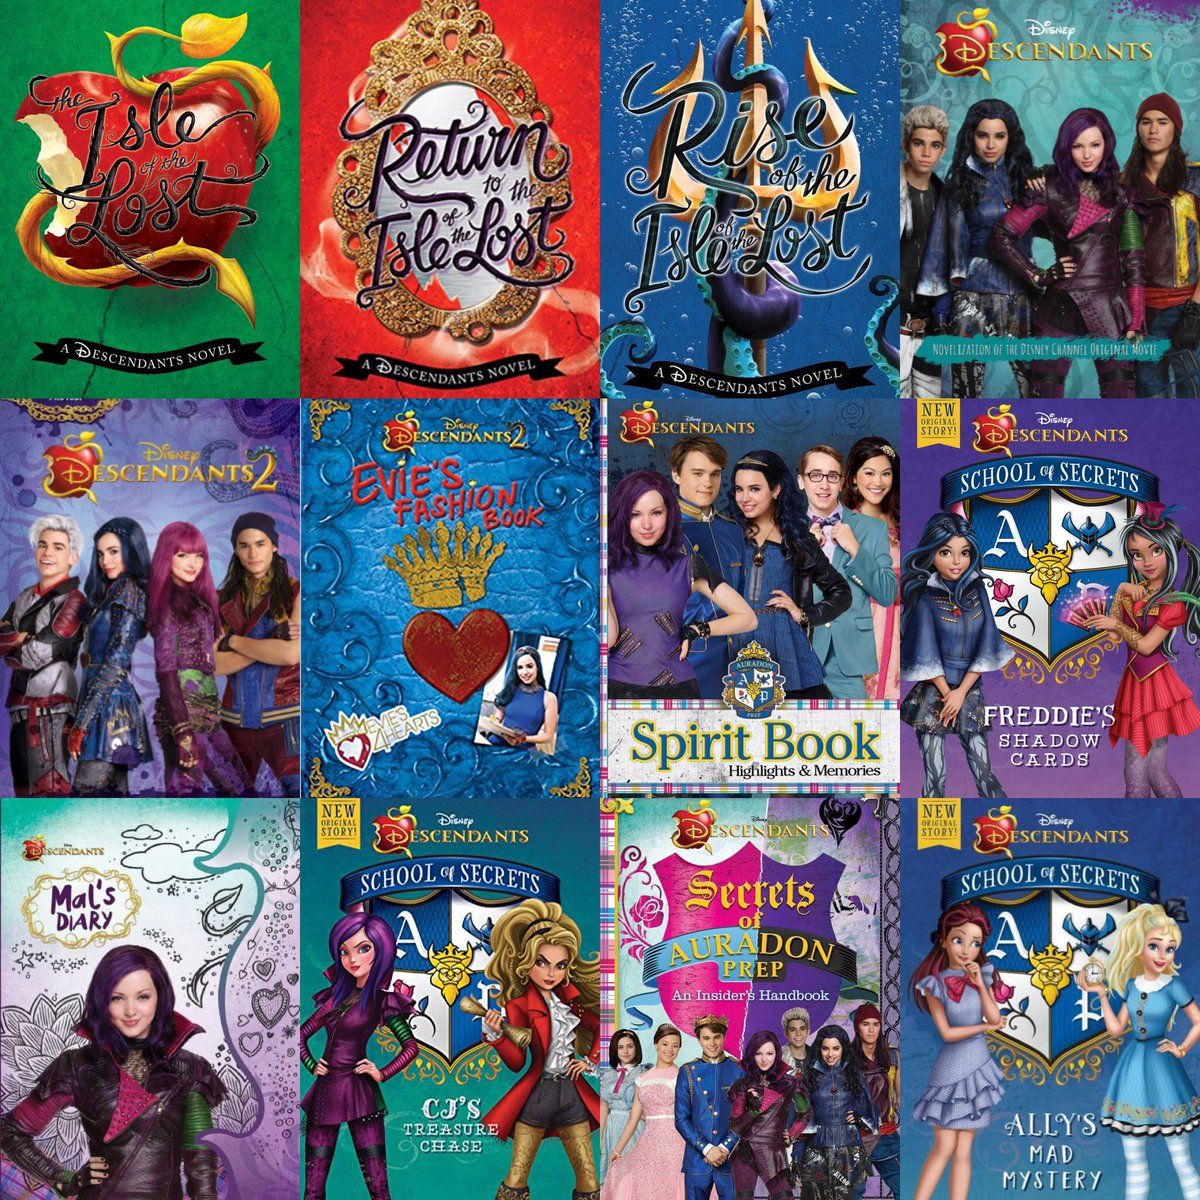 Libro De Descendientes Worldbookday Disneydescendants Descendants2